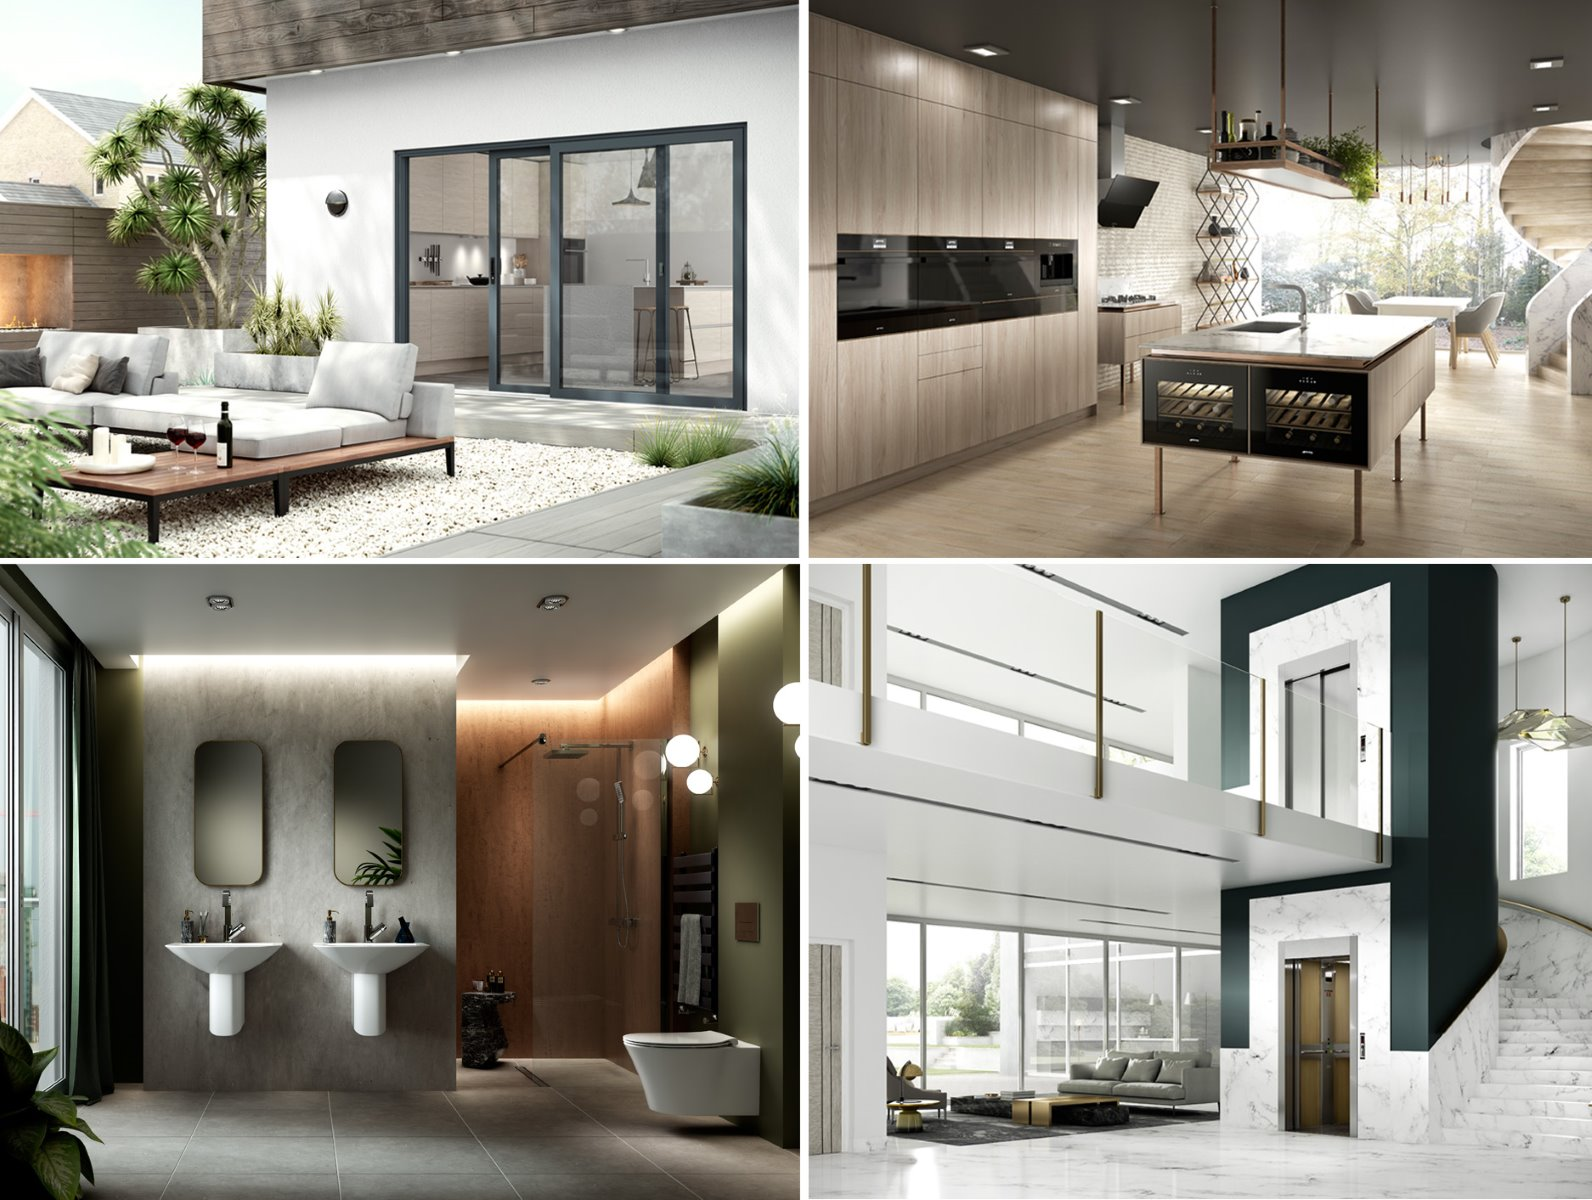 CGI architecture exterior interior domestic bathroom kitchen contemporary